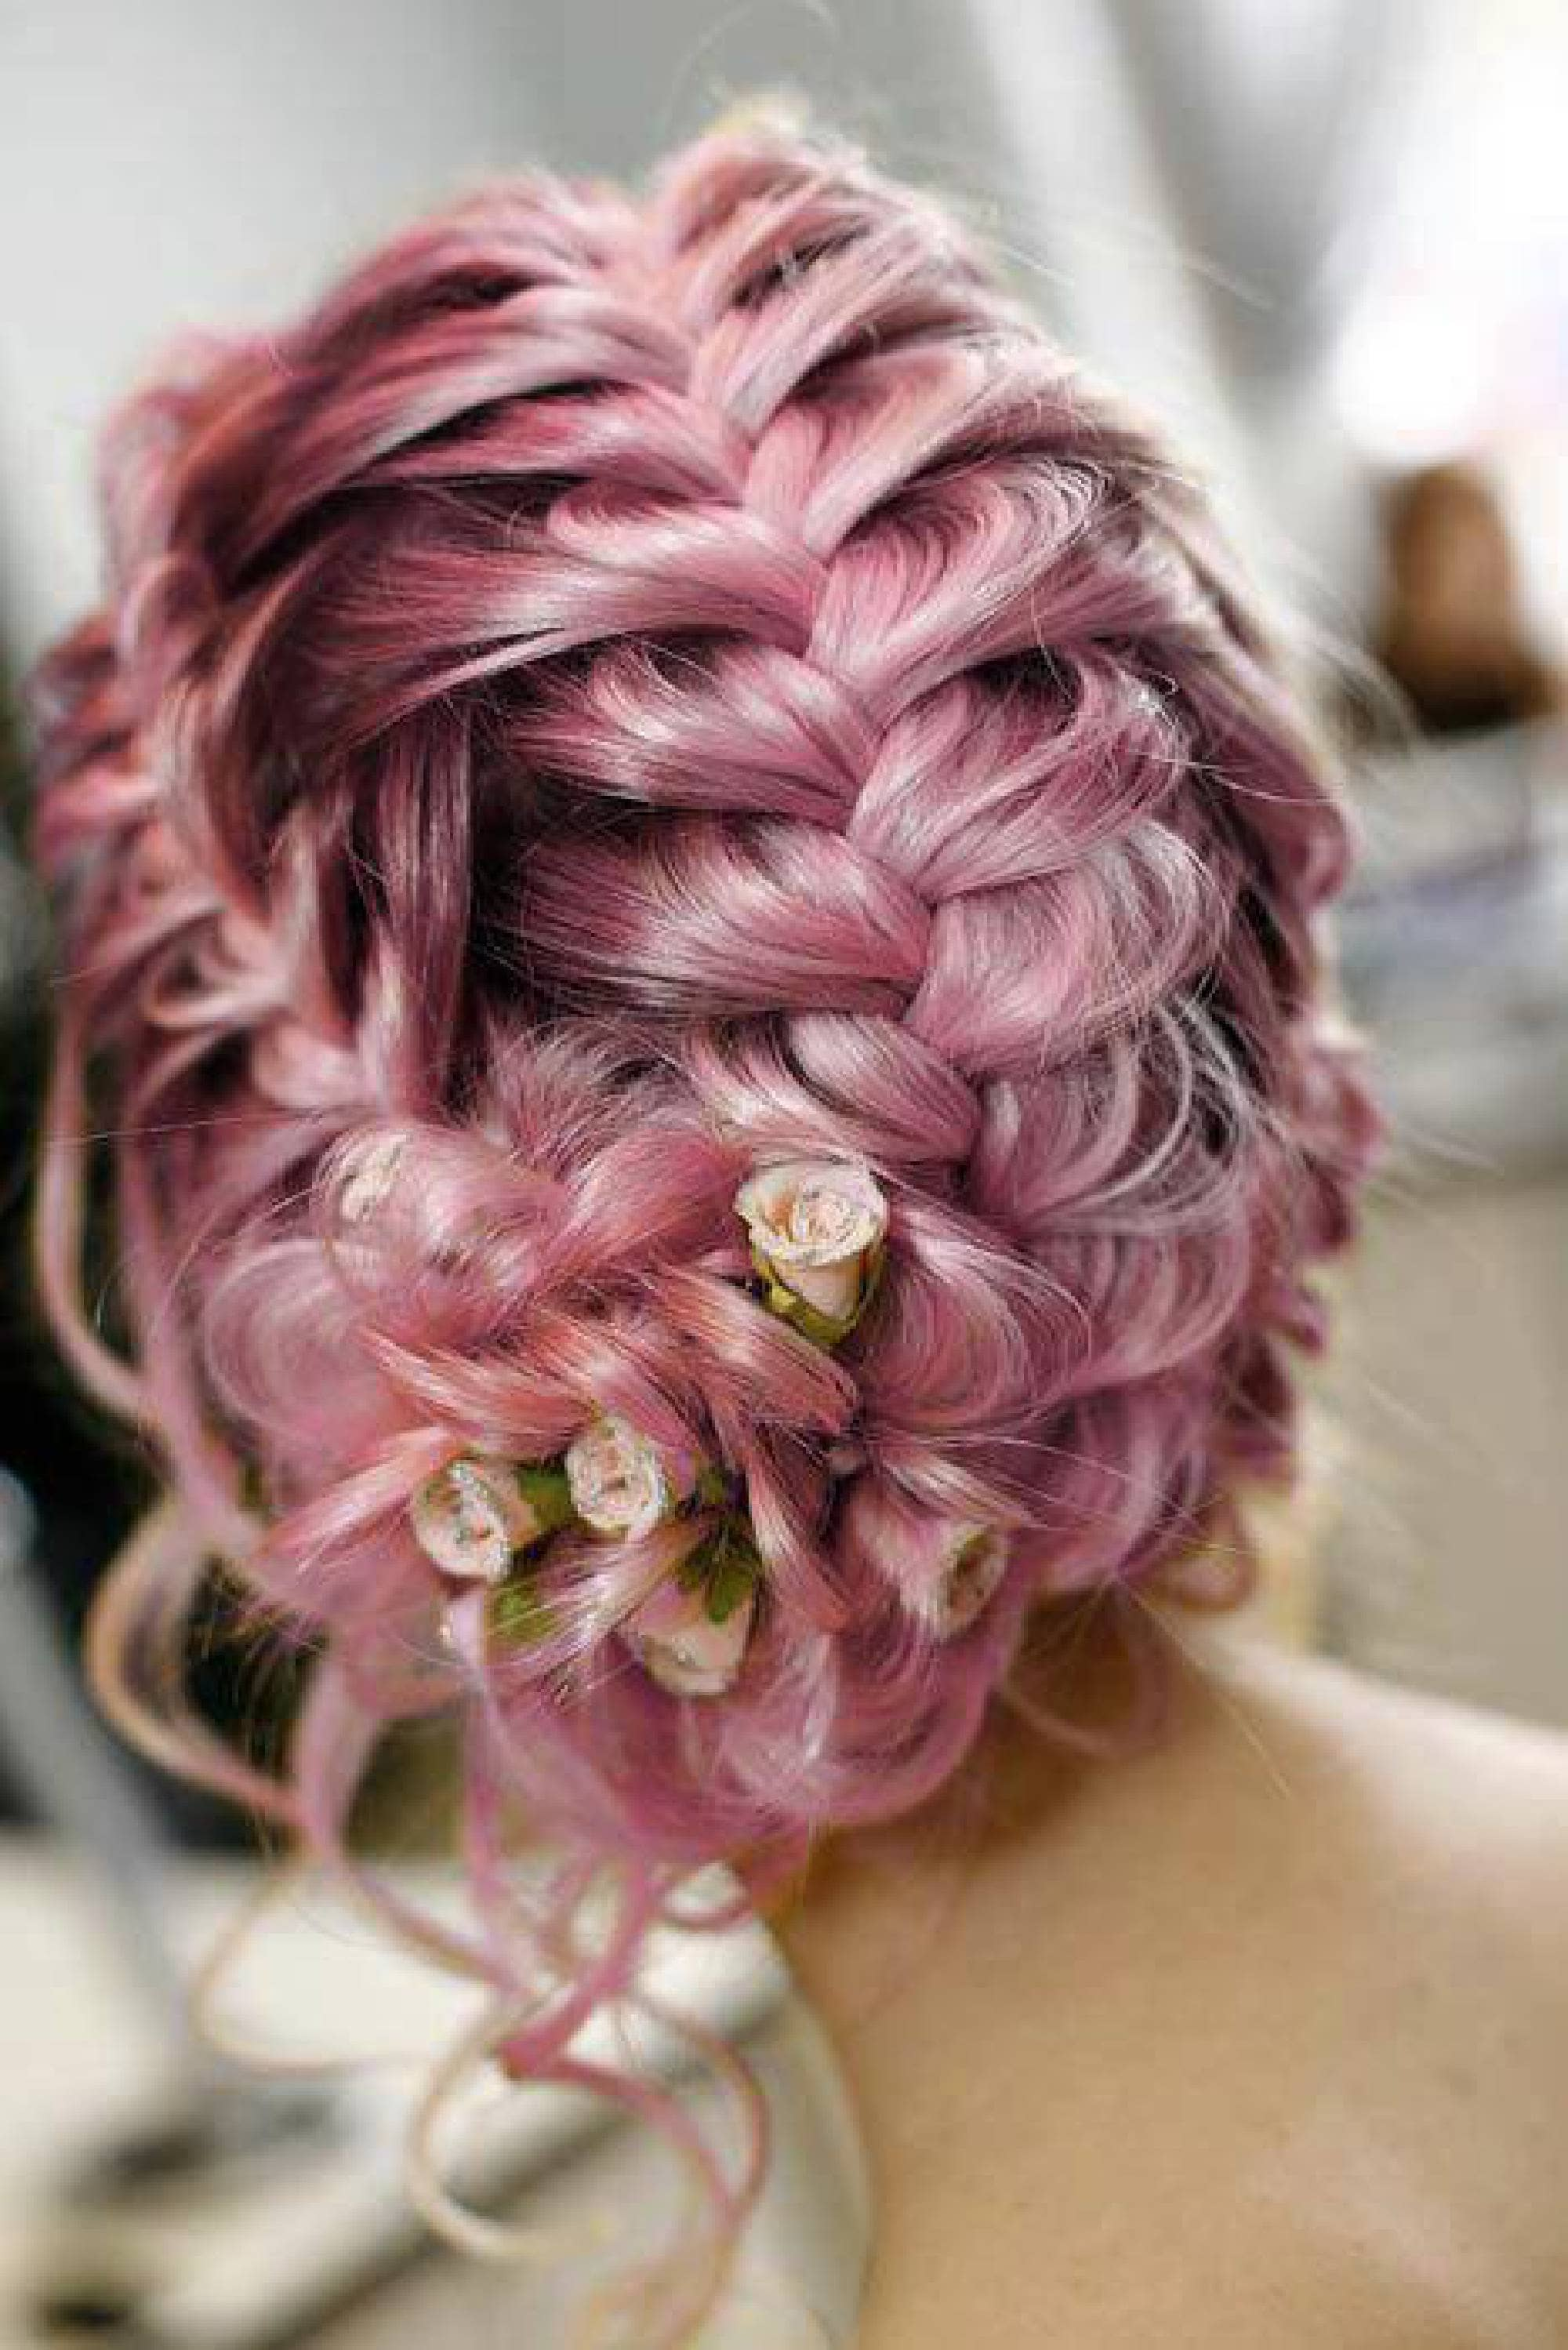 Tie under a braid for your updo